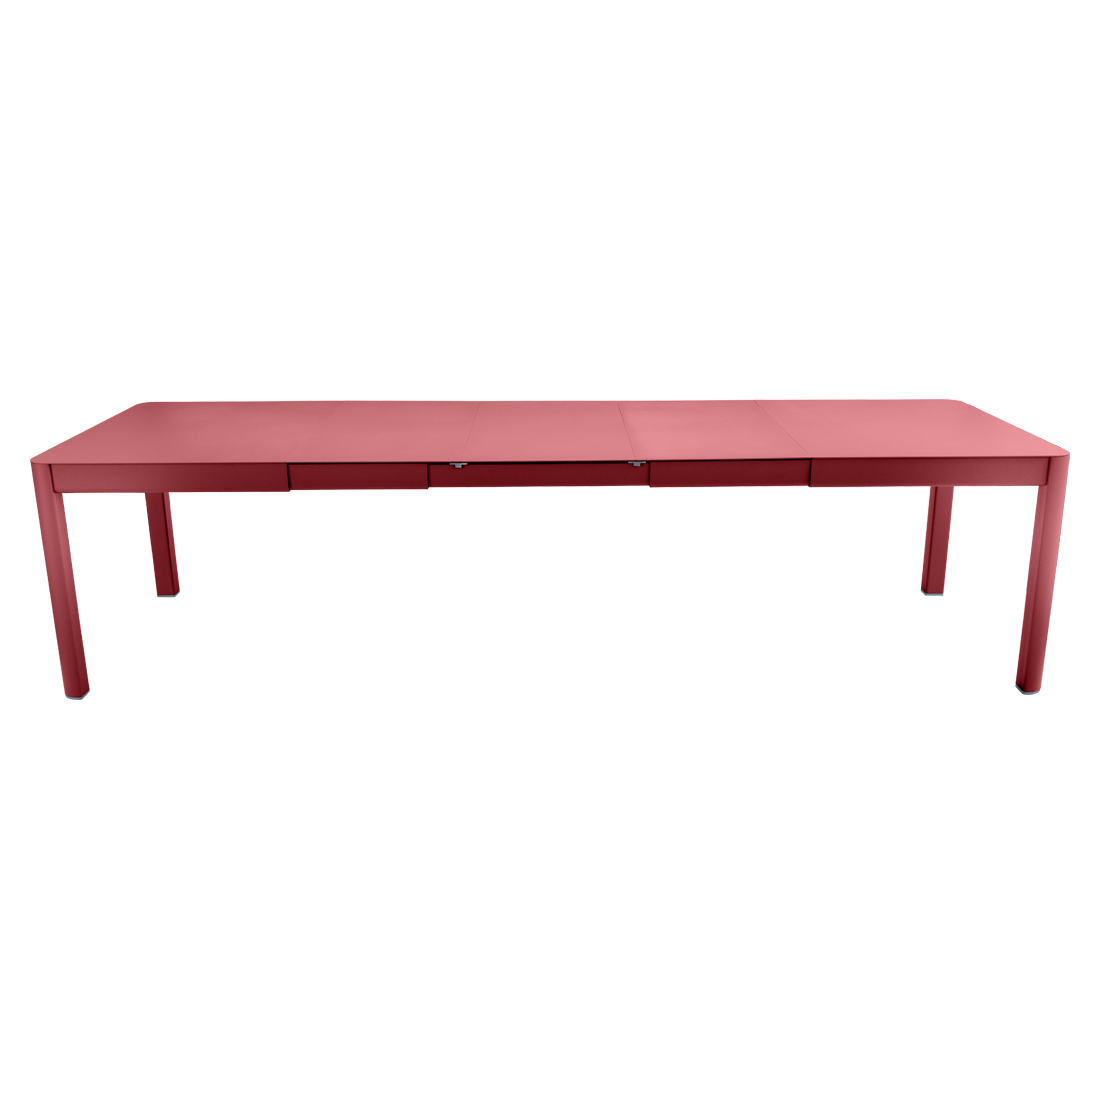 table de jardin rouge, table metal allonge, table metal a rallonge, table metal rectangulaire, table fermob allonge